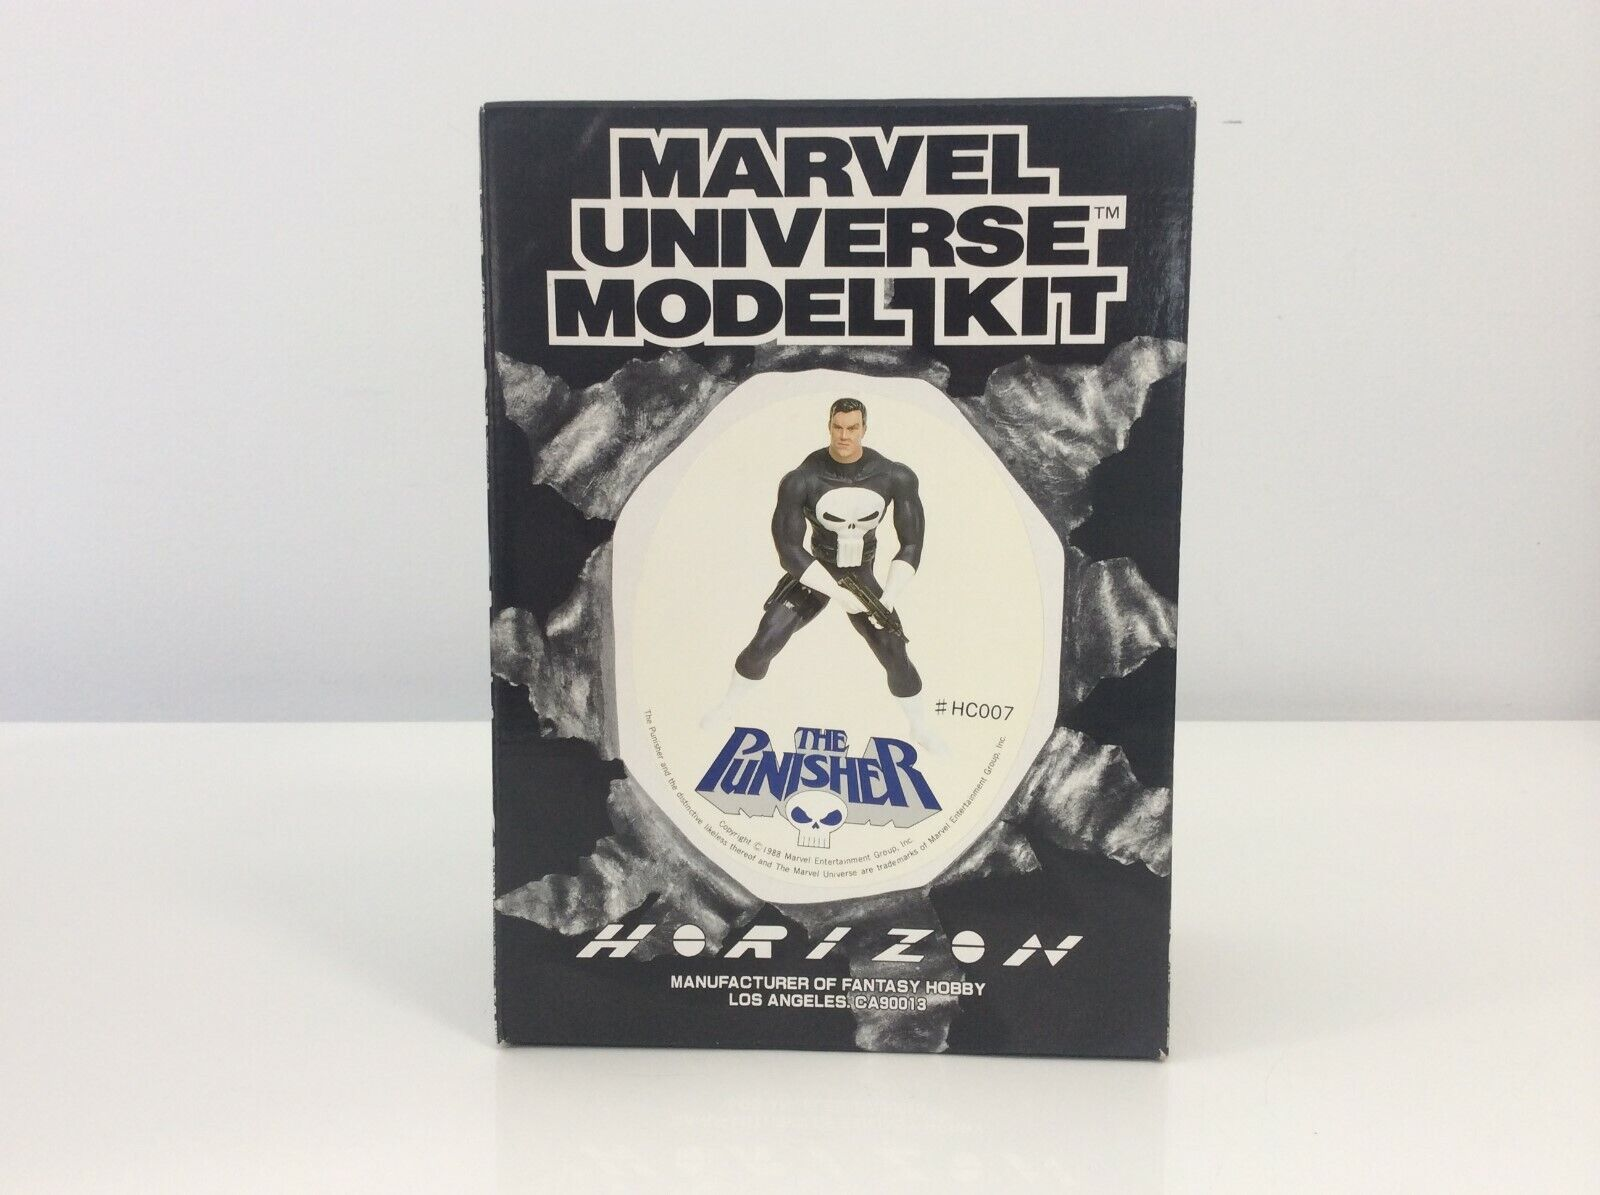 Vintage 1988 Marvel Universe Model Kit - The Punisher - MISB HC007